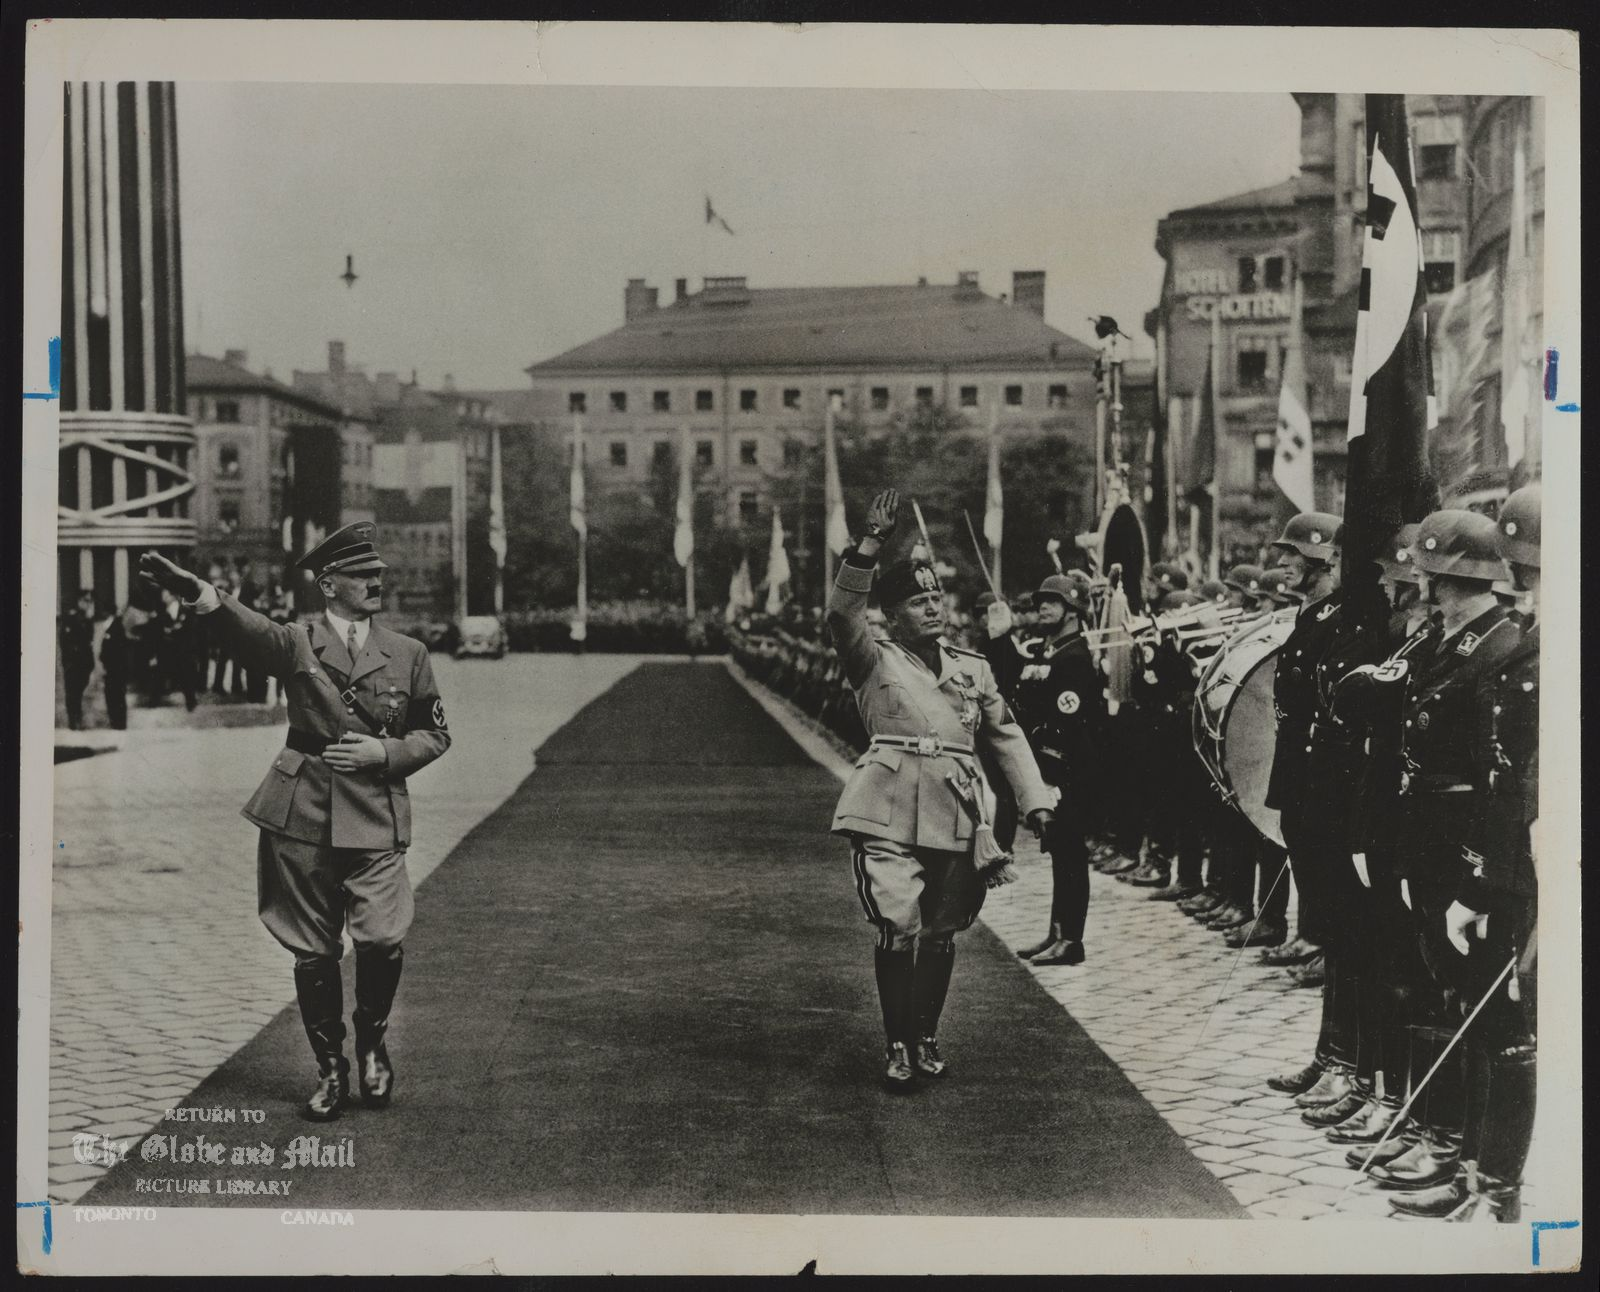 The notes transcribed from the back of this photograph are as follows: Benito MUSSOLINI Italy. Politician Hitler and Mussolini inspect a guard of honor in Munich in 1937